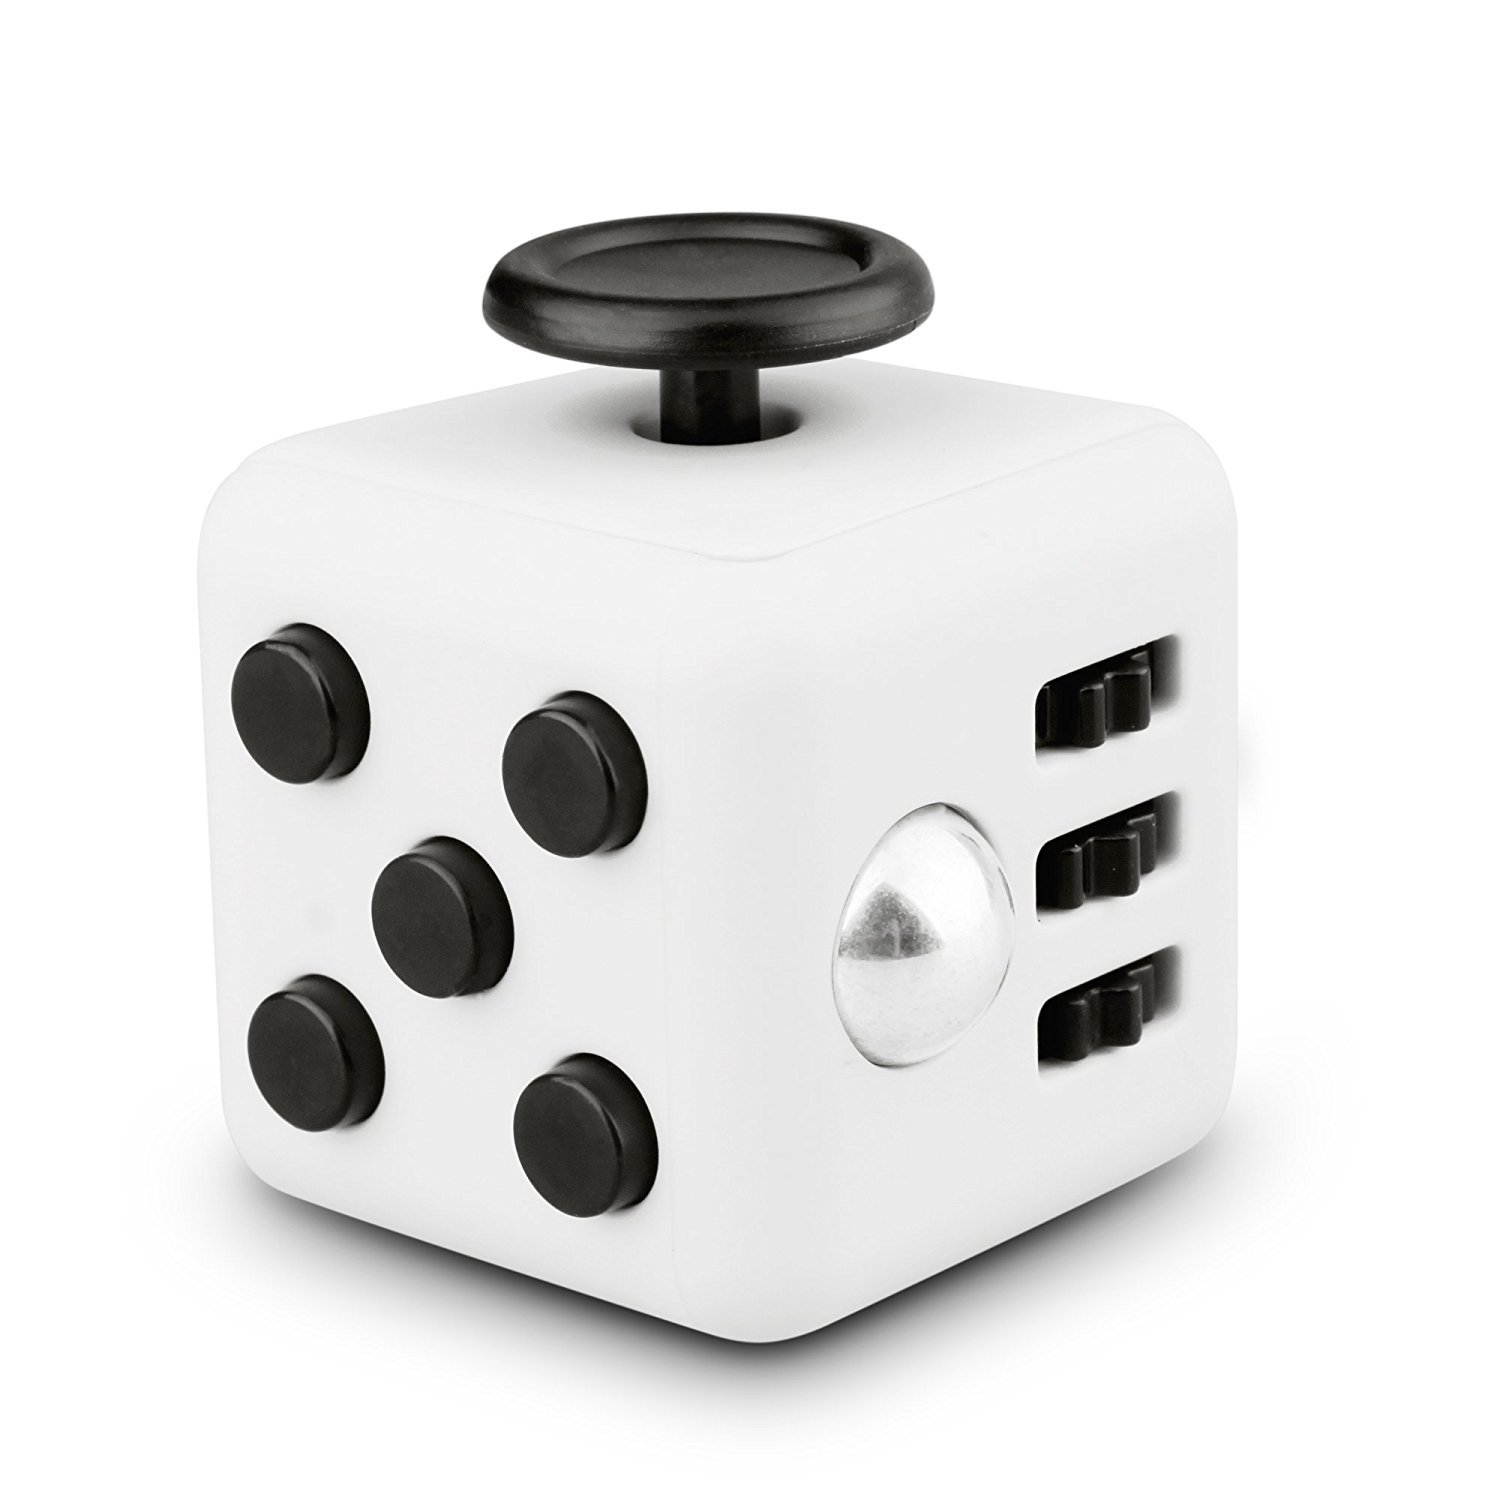 SmartToys Decompression Fidget Cube, Anti-Anxiety Decompression Dice for Children and Adults Black+White Parbeson